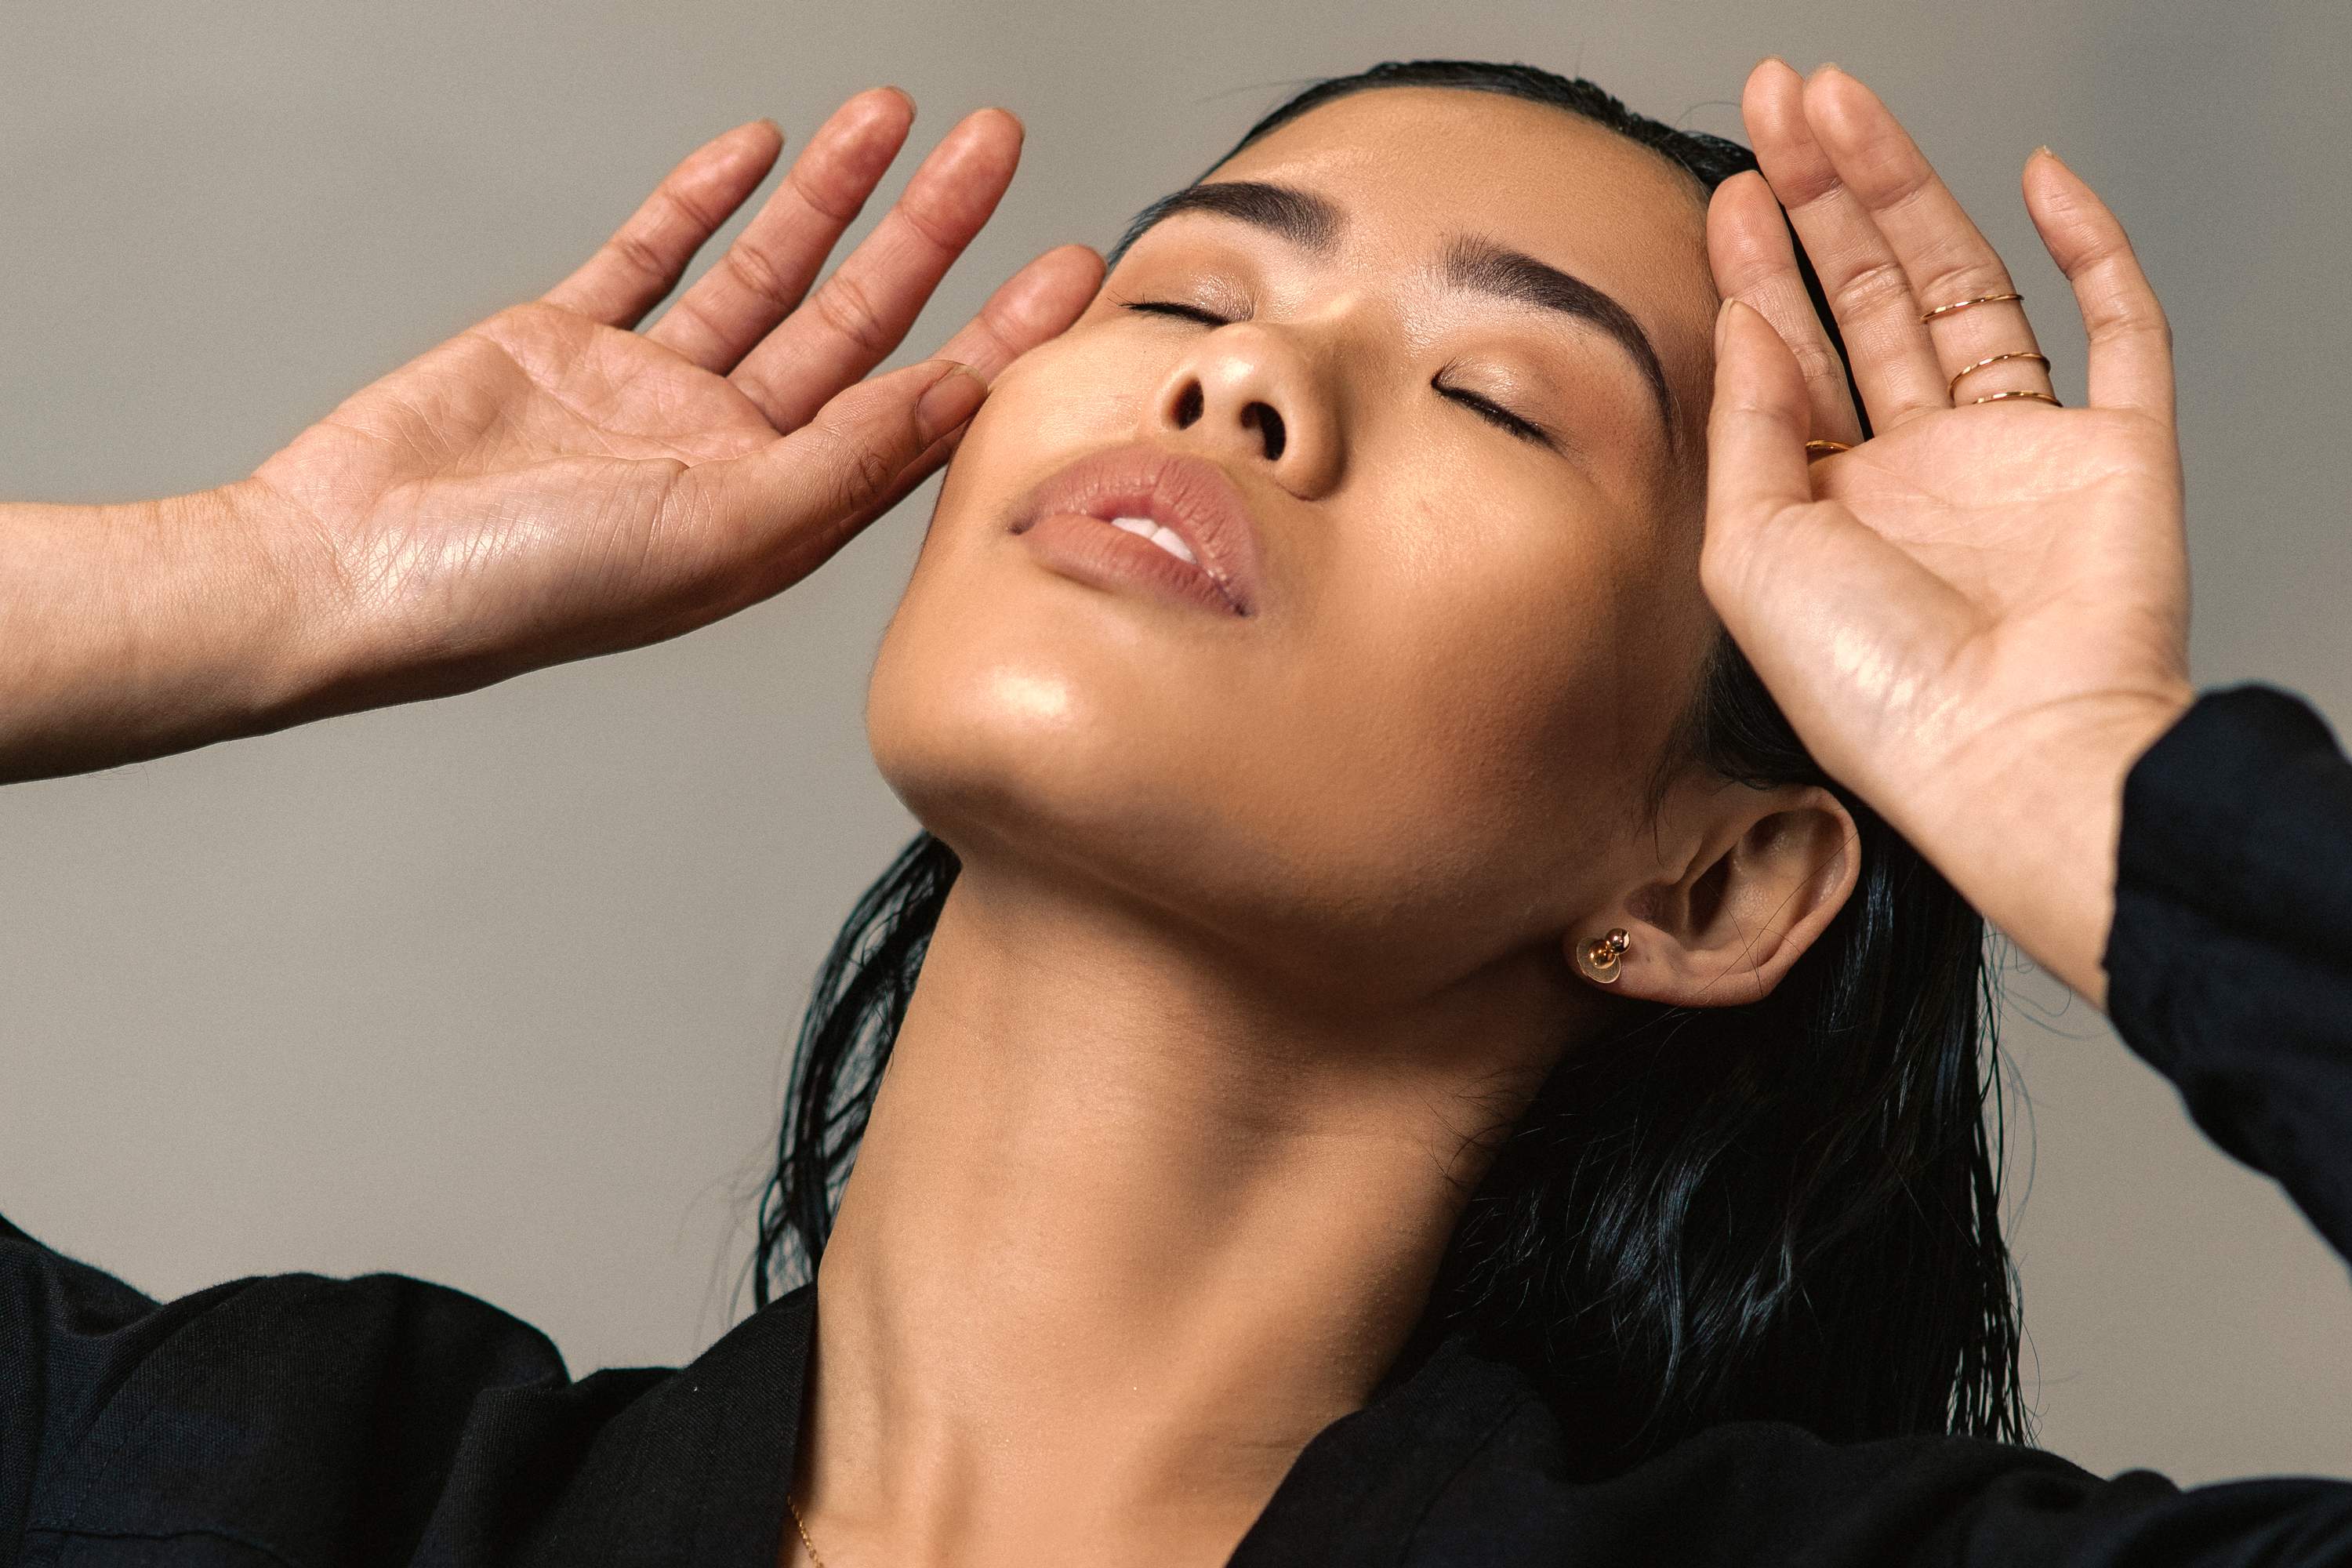 An Asian model with her eyes closed and both hands to her face.